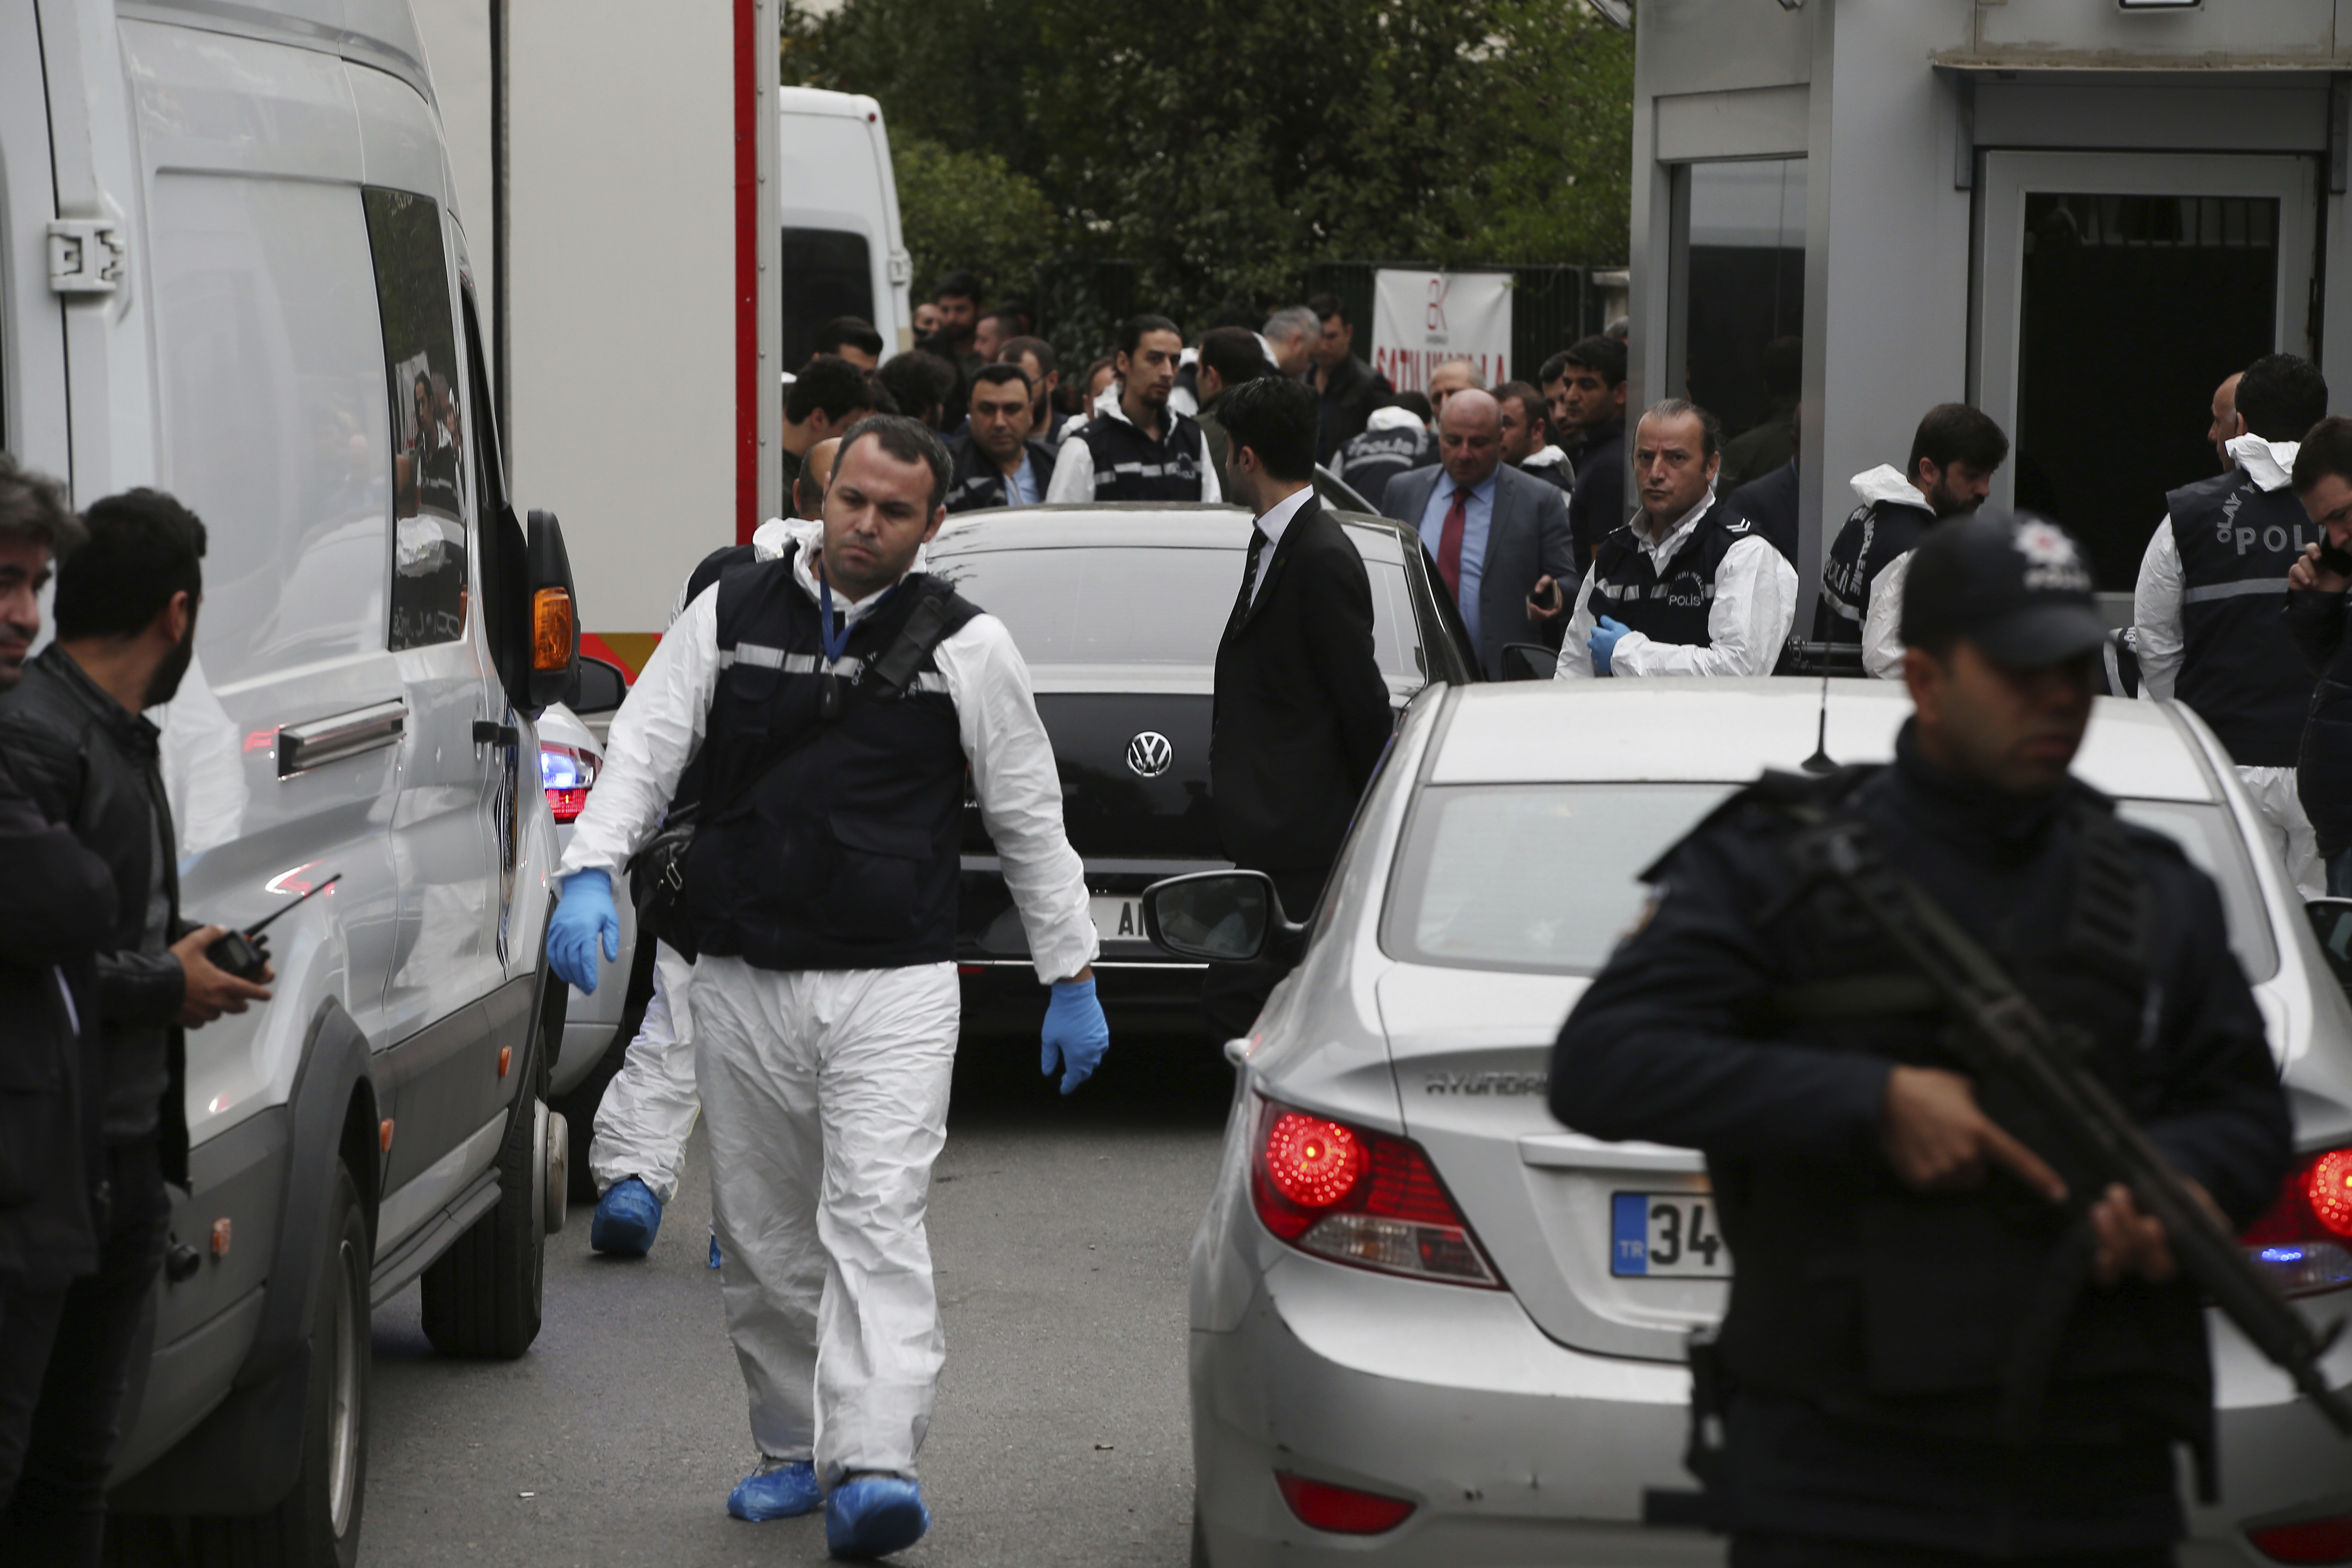 Turkish police gather outside the residence of the Saudi consul General Mohammed al-Otaibi to conduct a search after the disappearance and alleged slaying of writer Jamal Khashoggi, in Istanbul, Oct. 17, 2018.